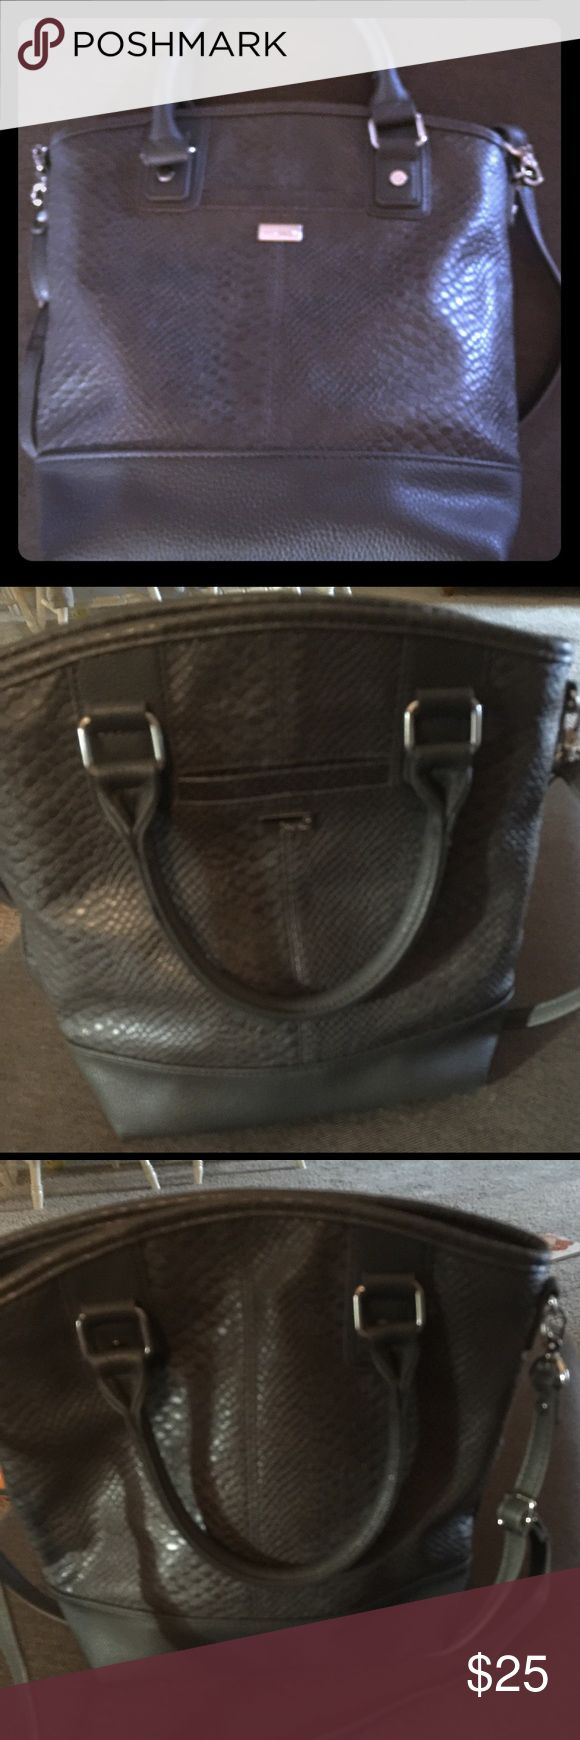 Thirty One Purse Handbag with shoulder strap. Small but mighty little purse. ThirtyOne Bags Shoulder Bags